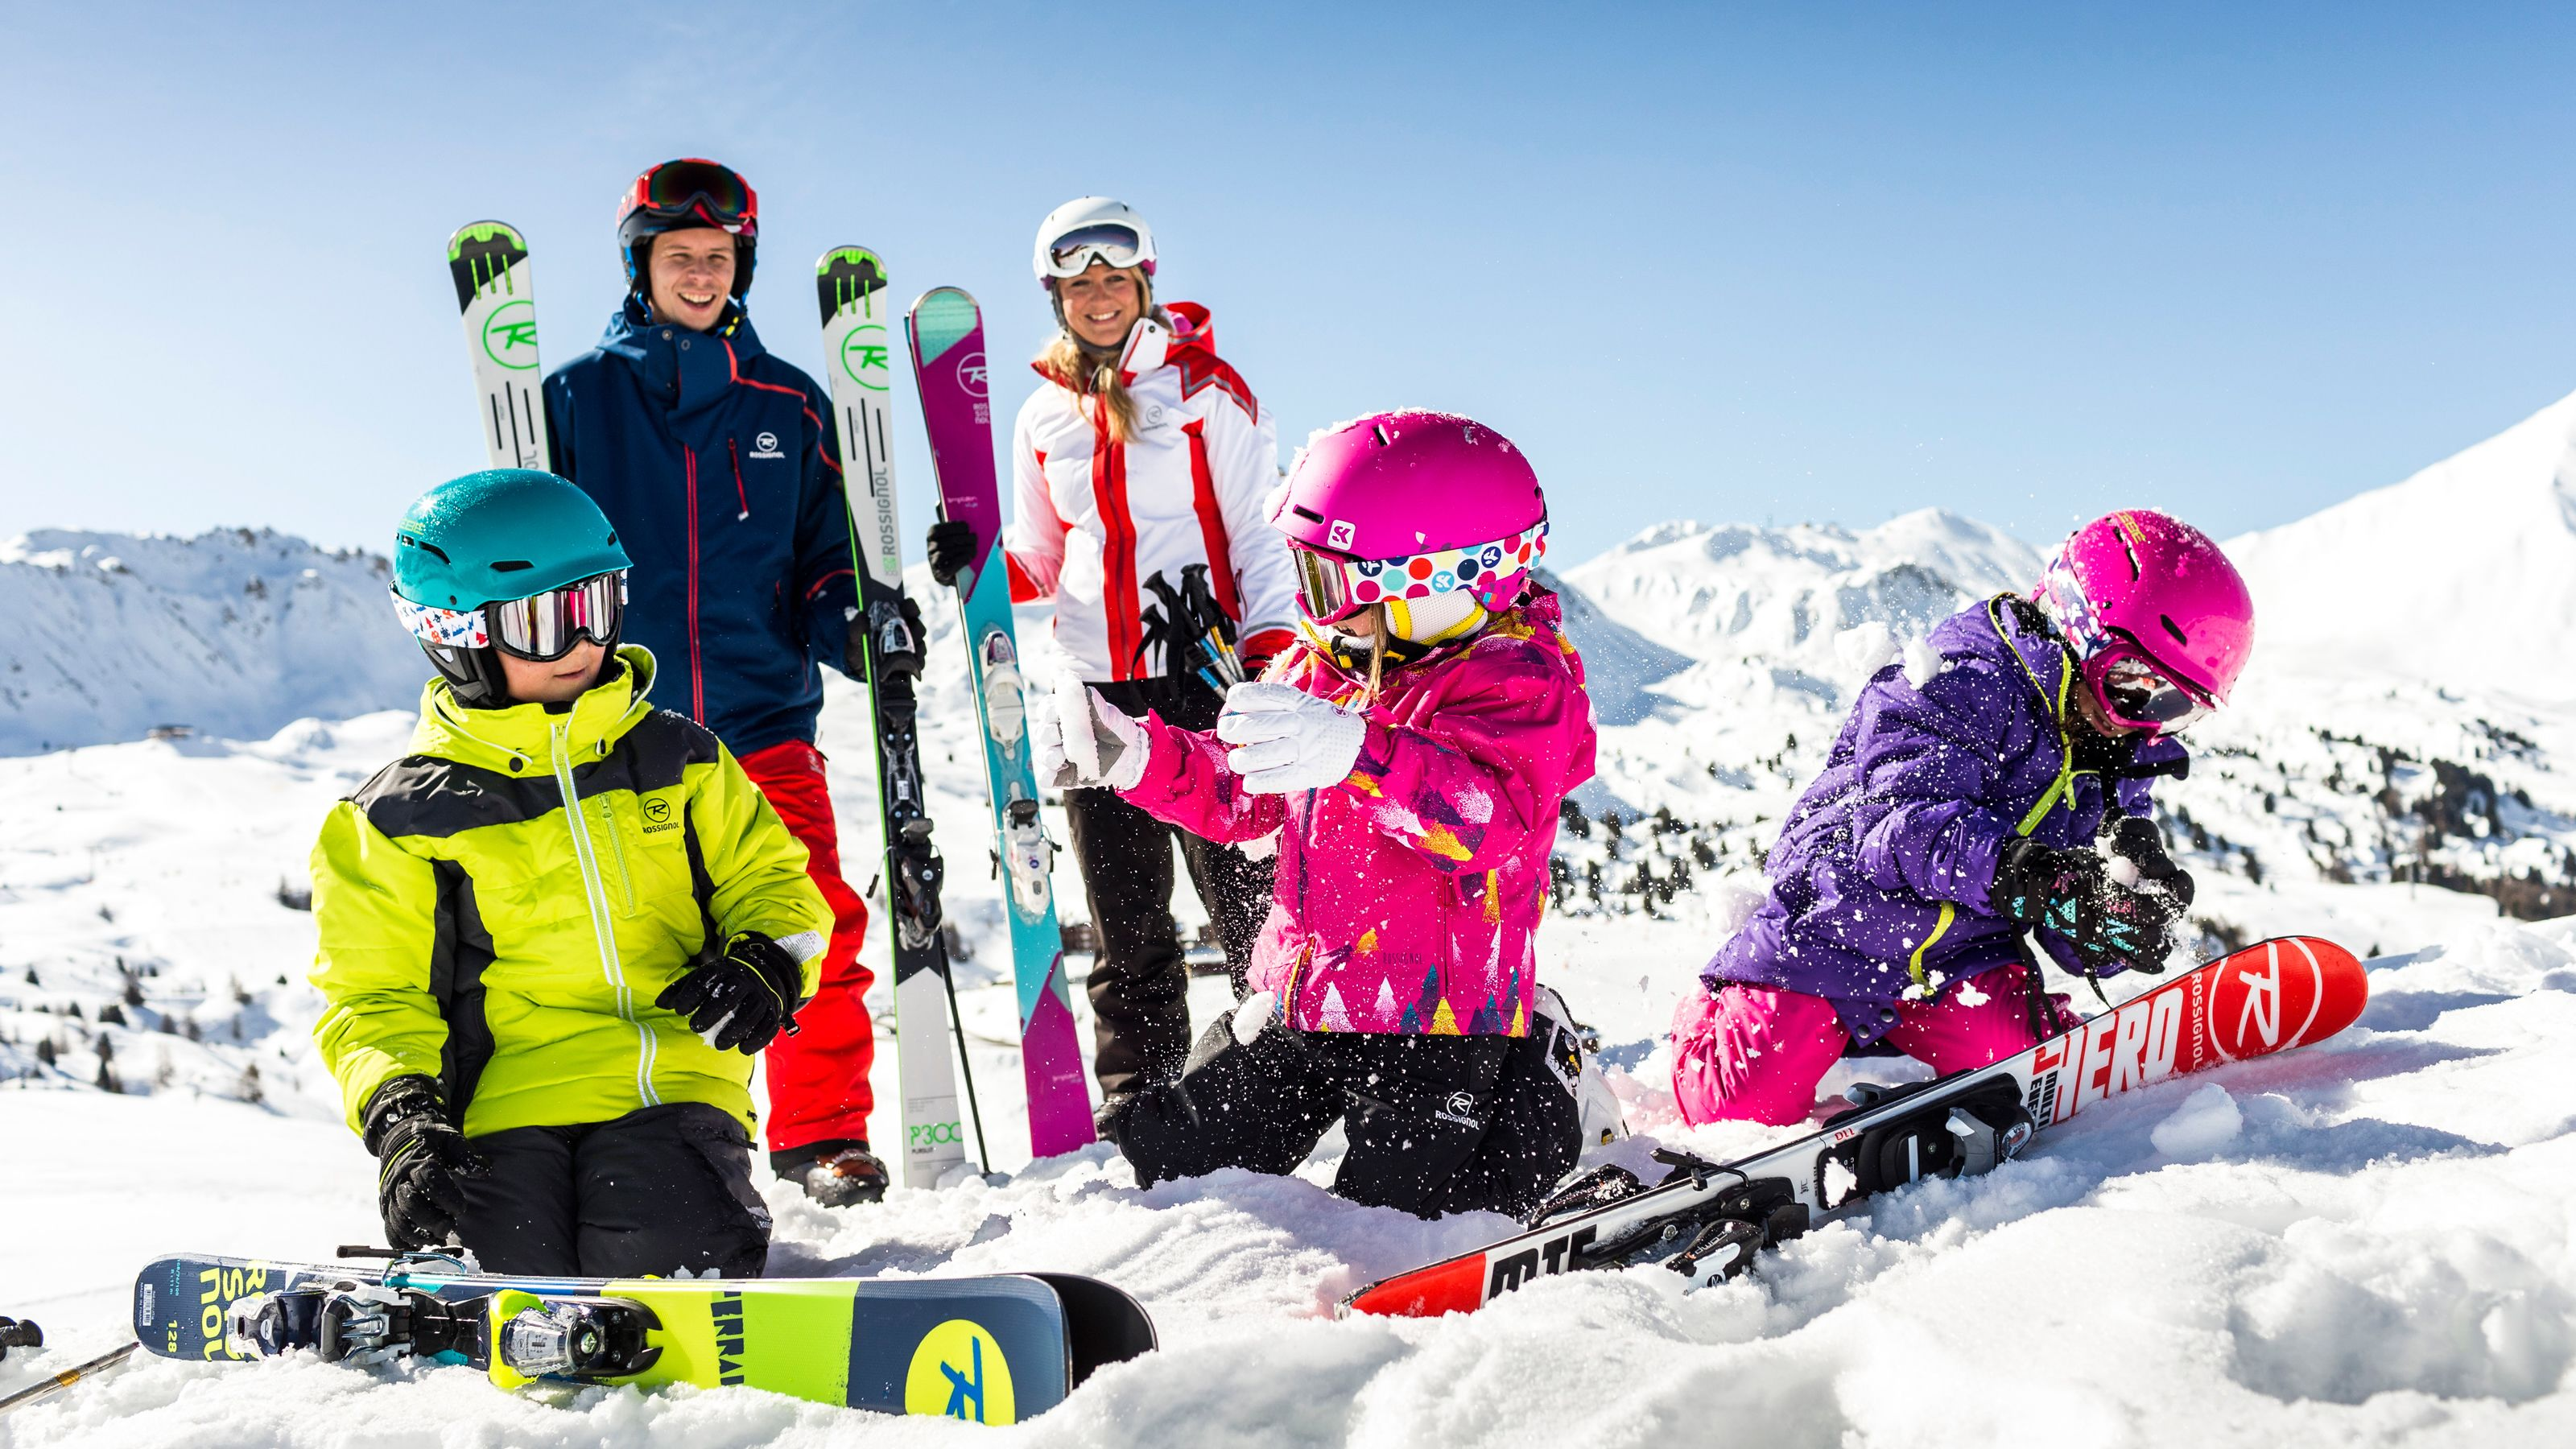 Family preparing for an exciting afternoon on the ski slopes